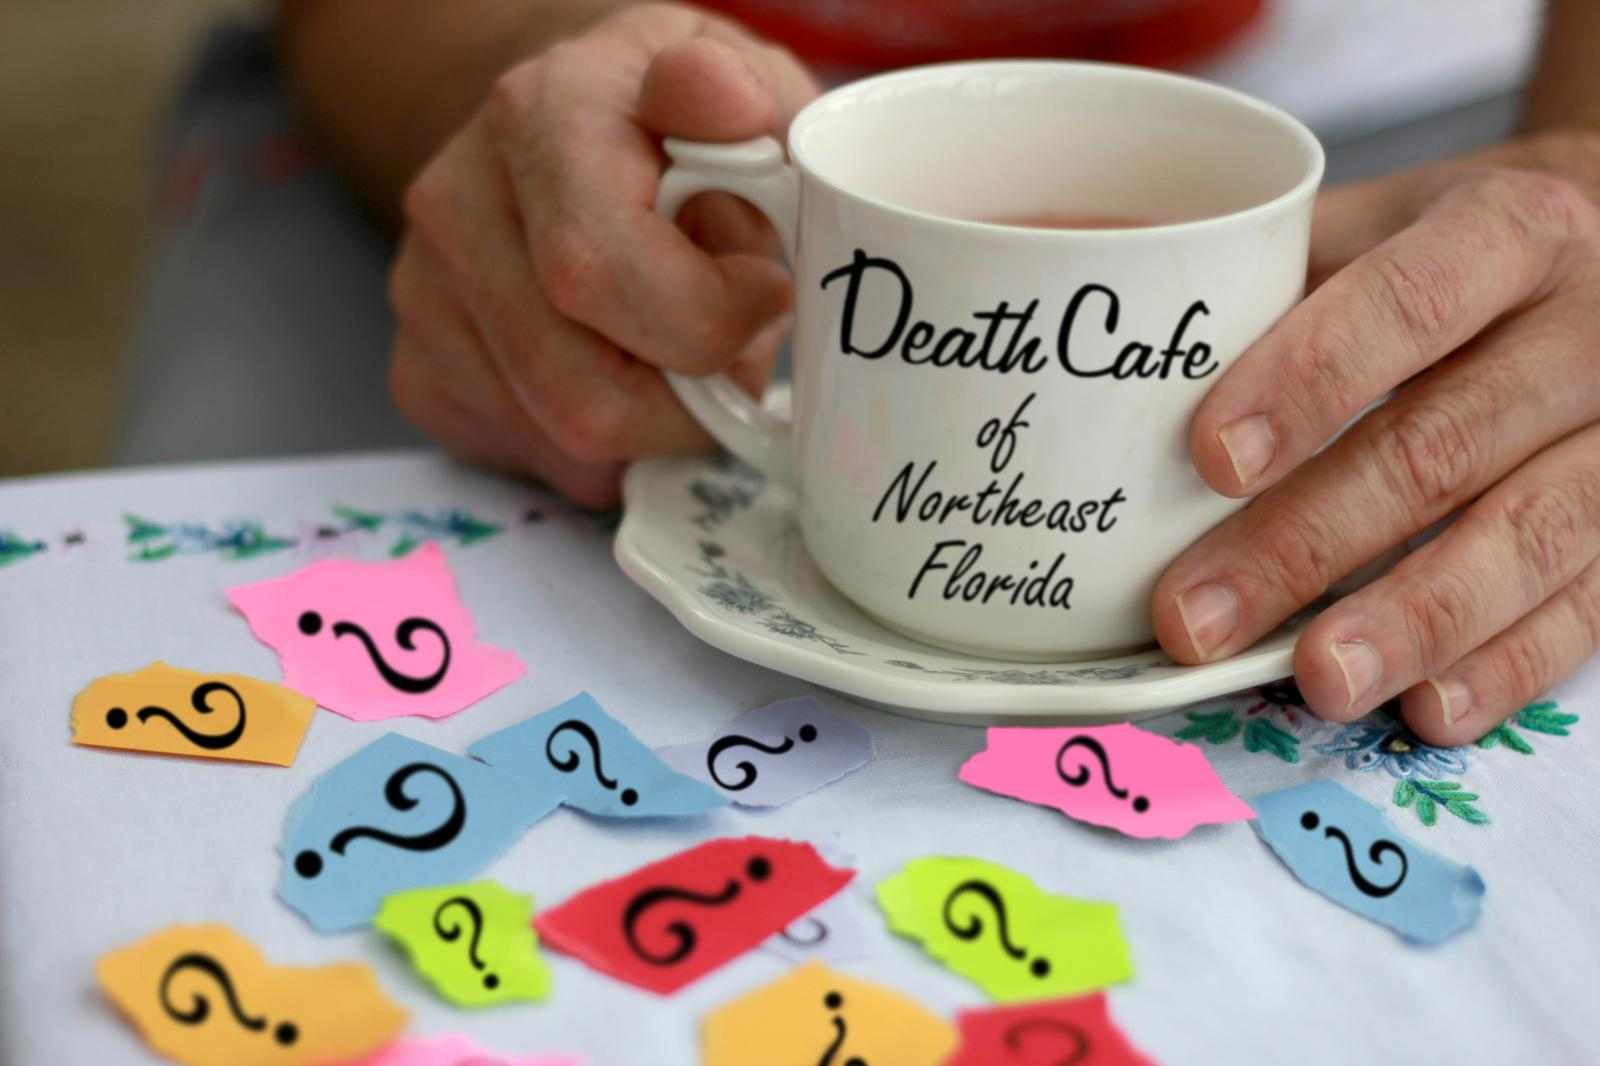 VIRTUAL MEETING EST Death Cafe  Northeast Florida -